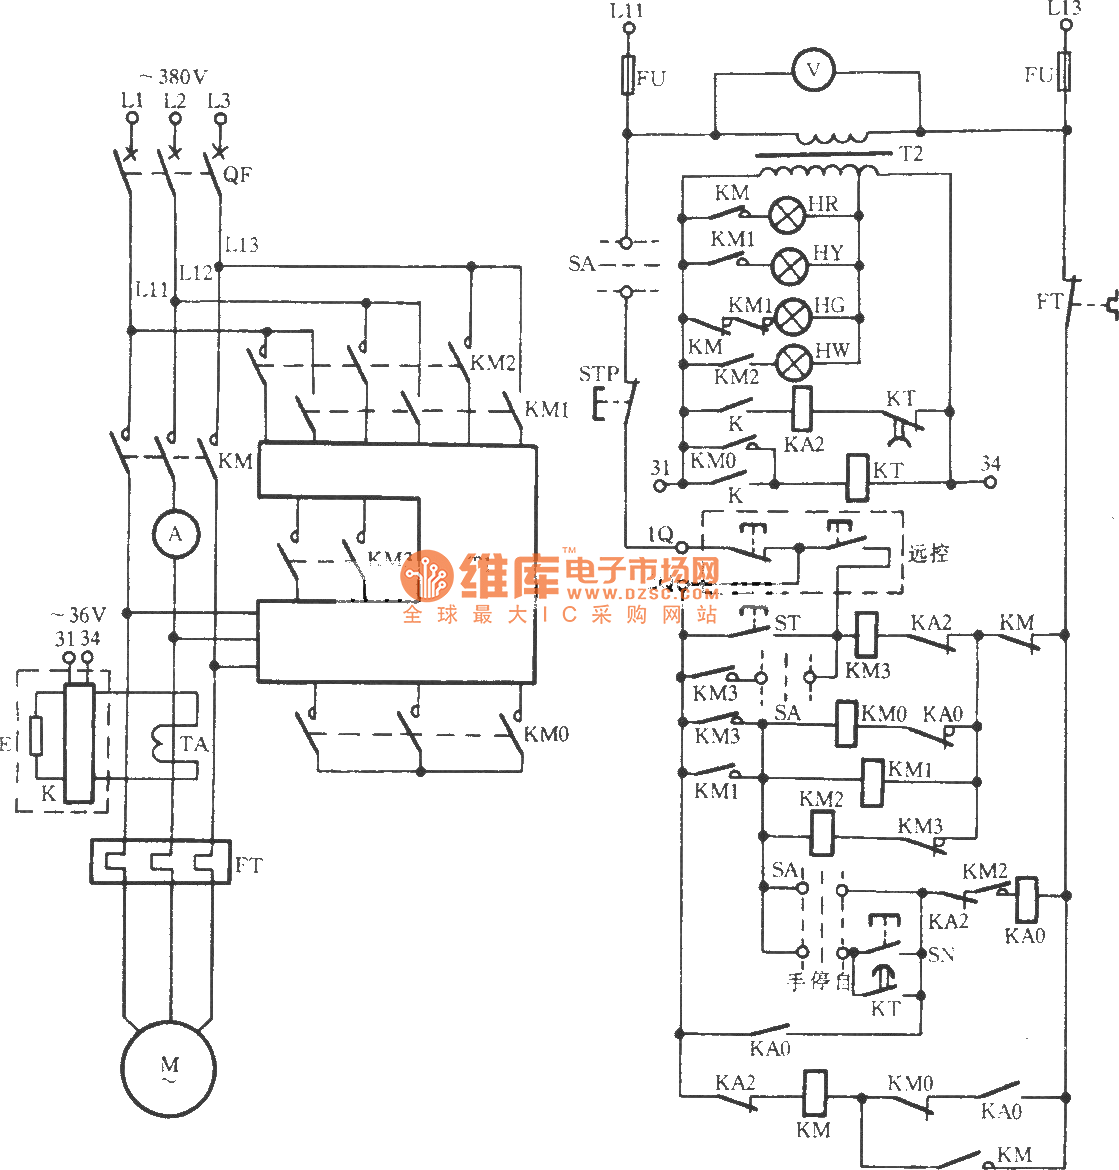 jj2b-5 57 5 variable voltage start-up circuit - basic circuit - circuit diagram